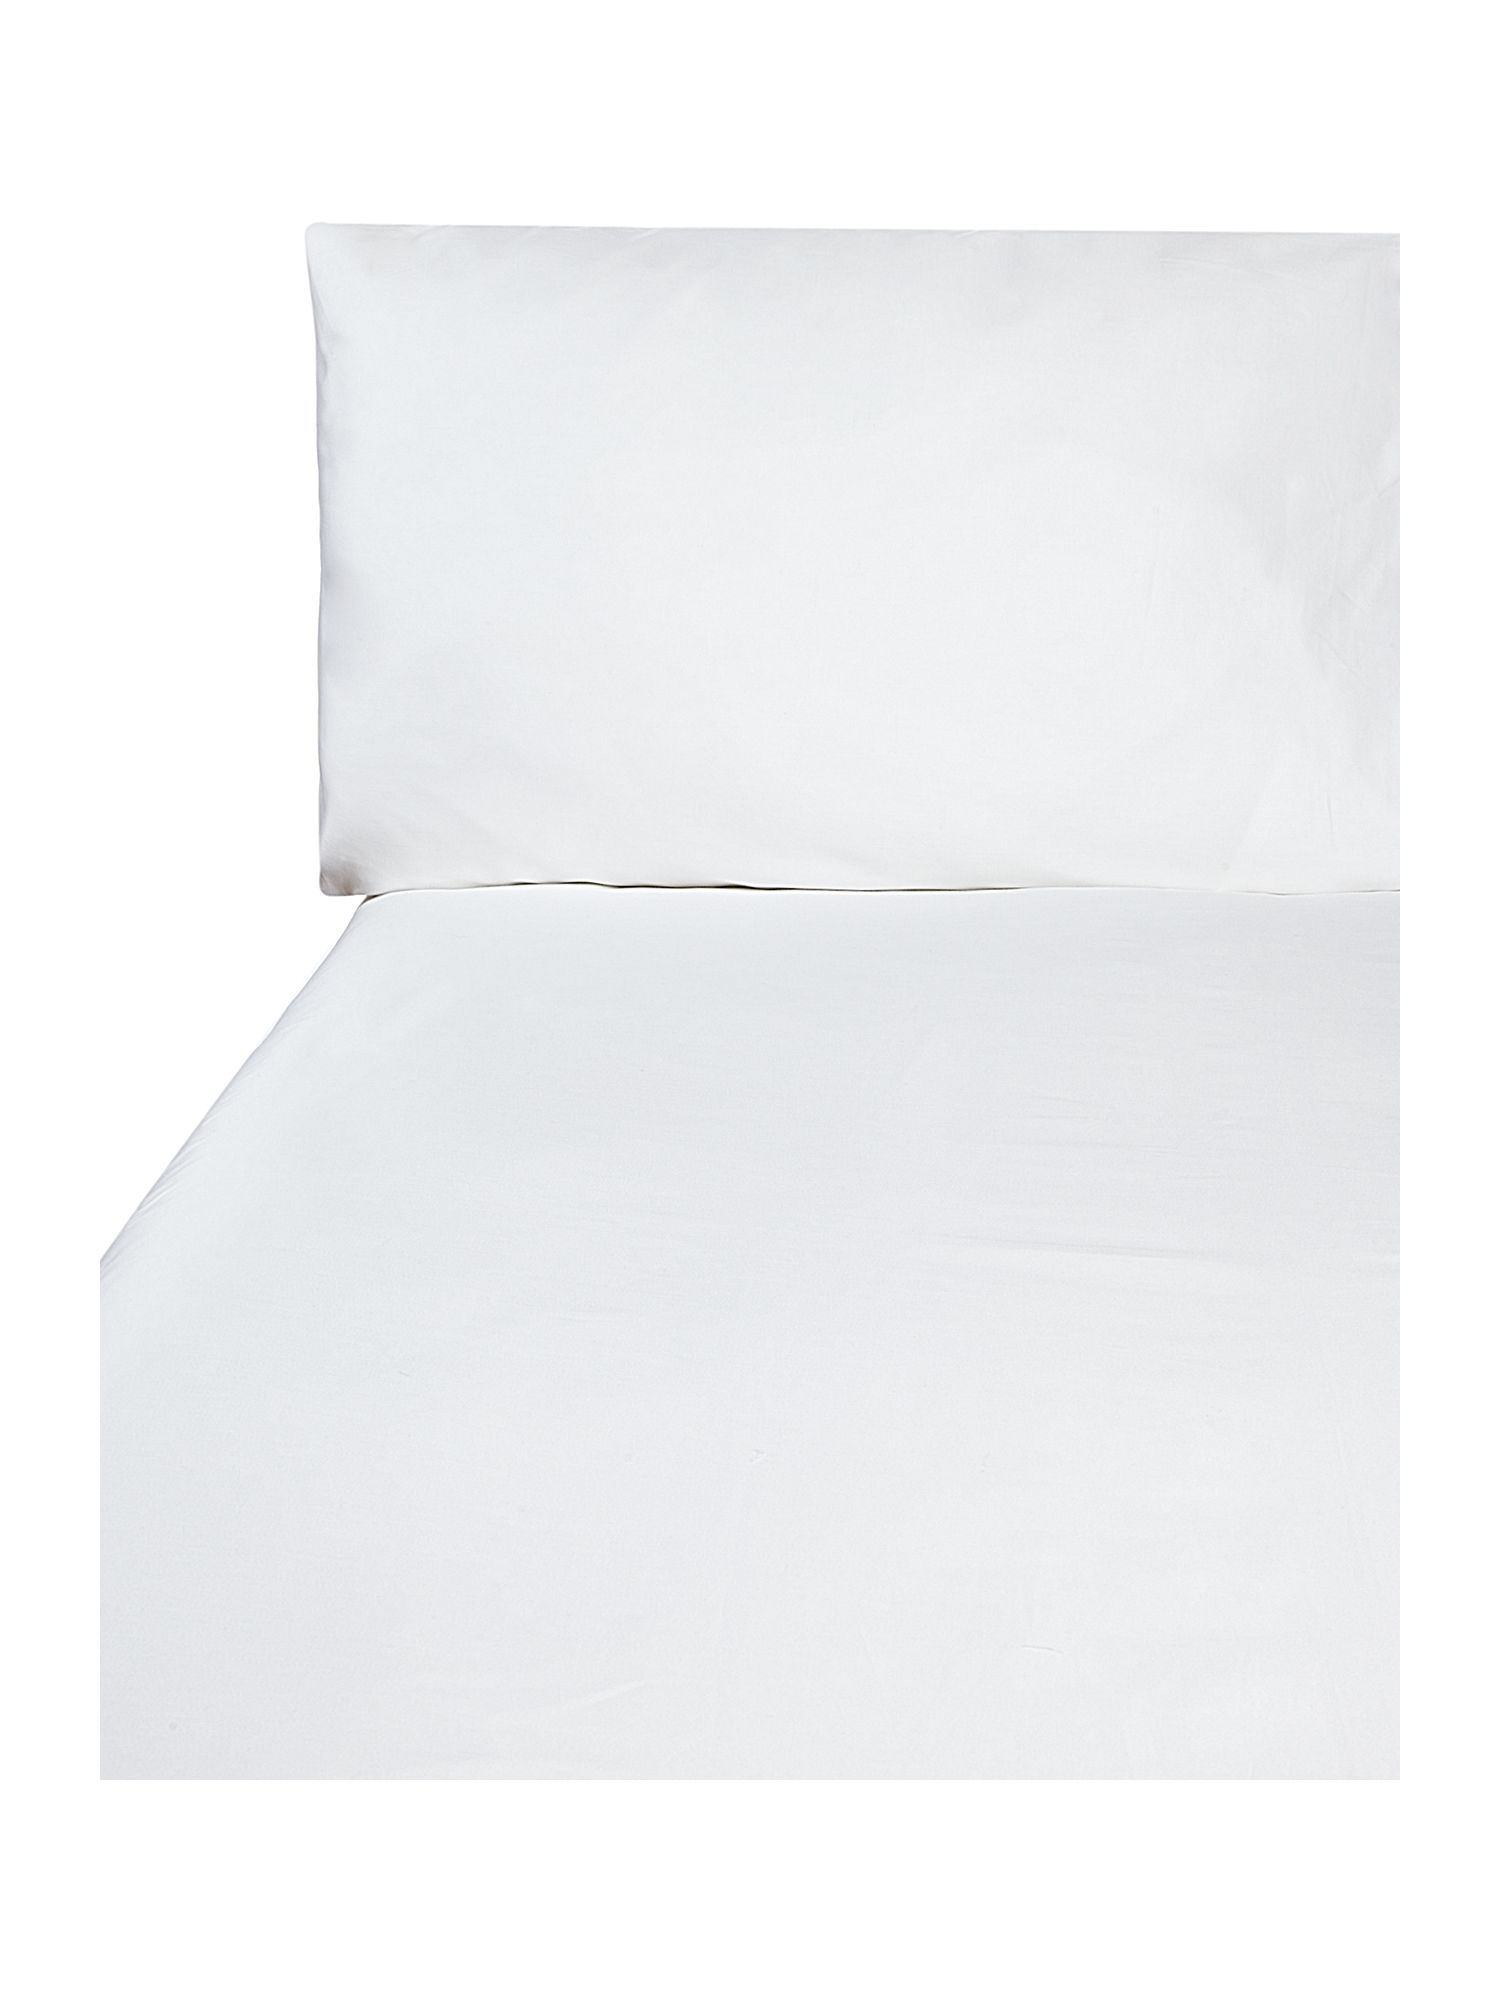 500 thread count white sheeting range